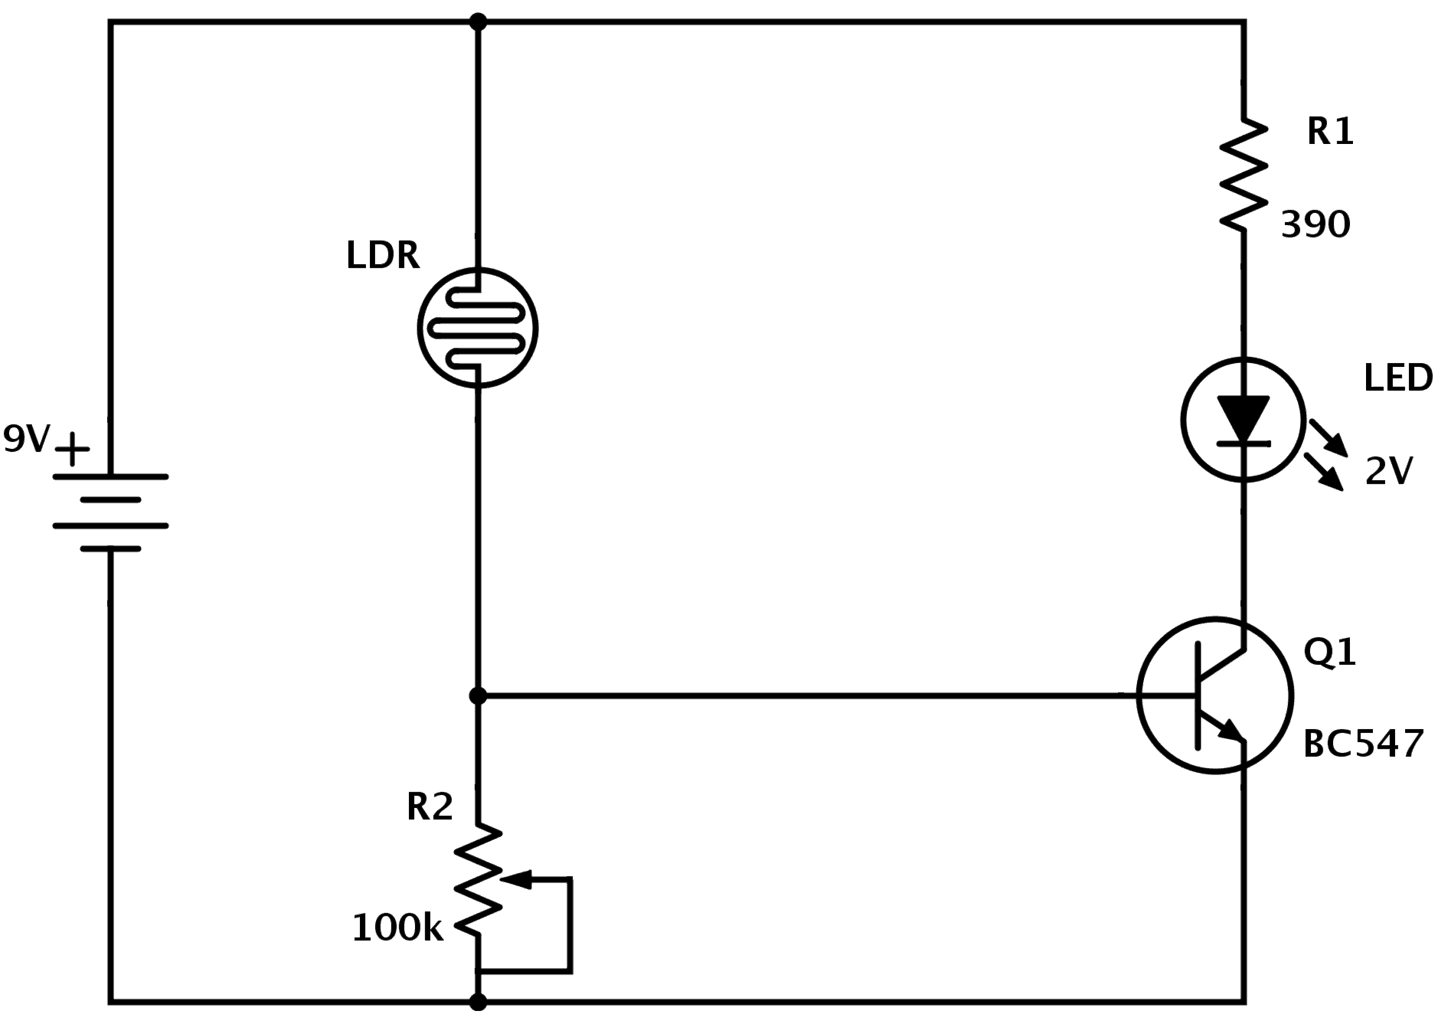 ldr circuit diagram build electronic circuits rh build electronic circuits  com led load resistor wiring diagram